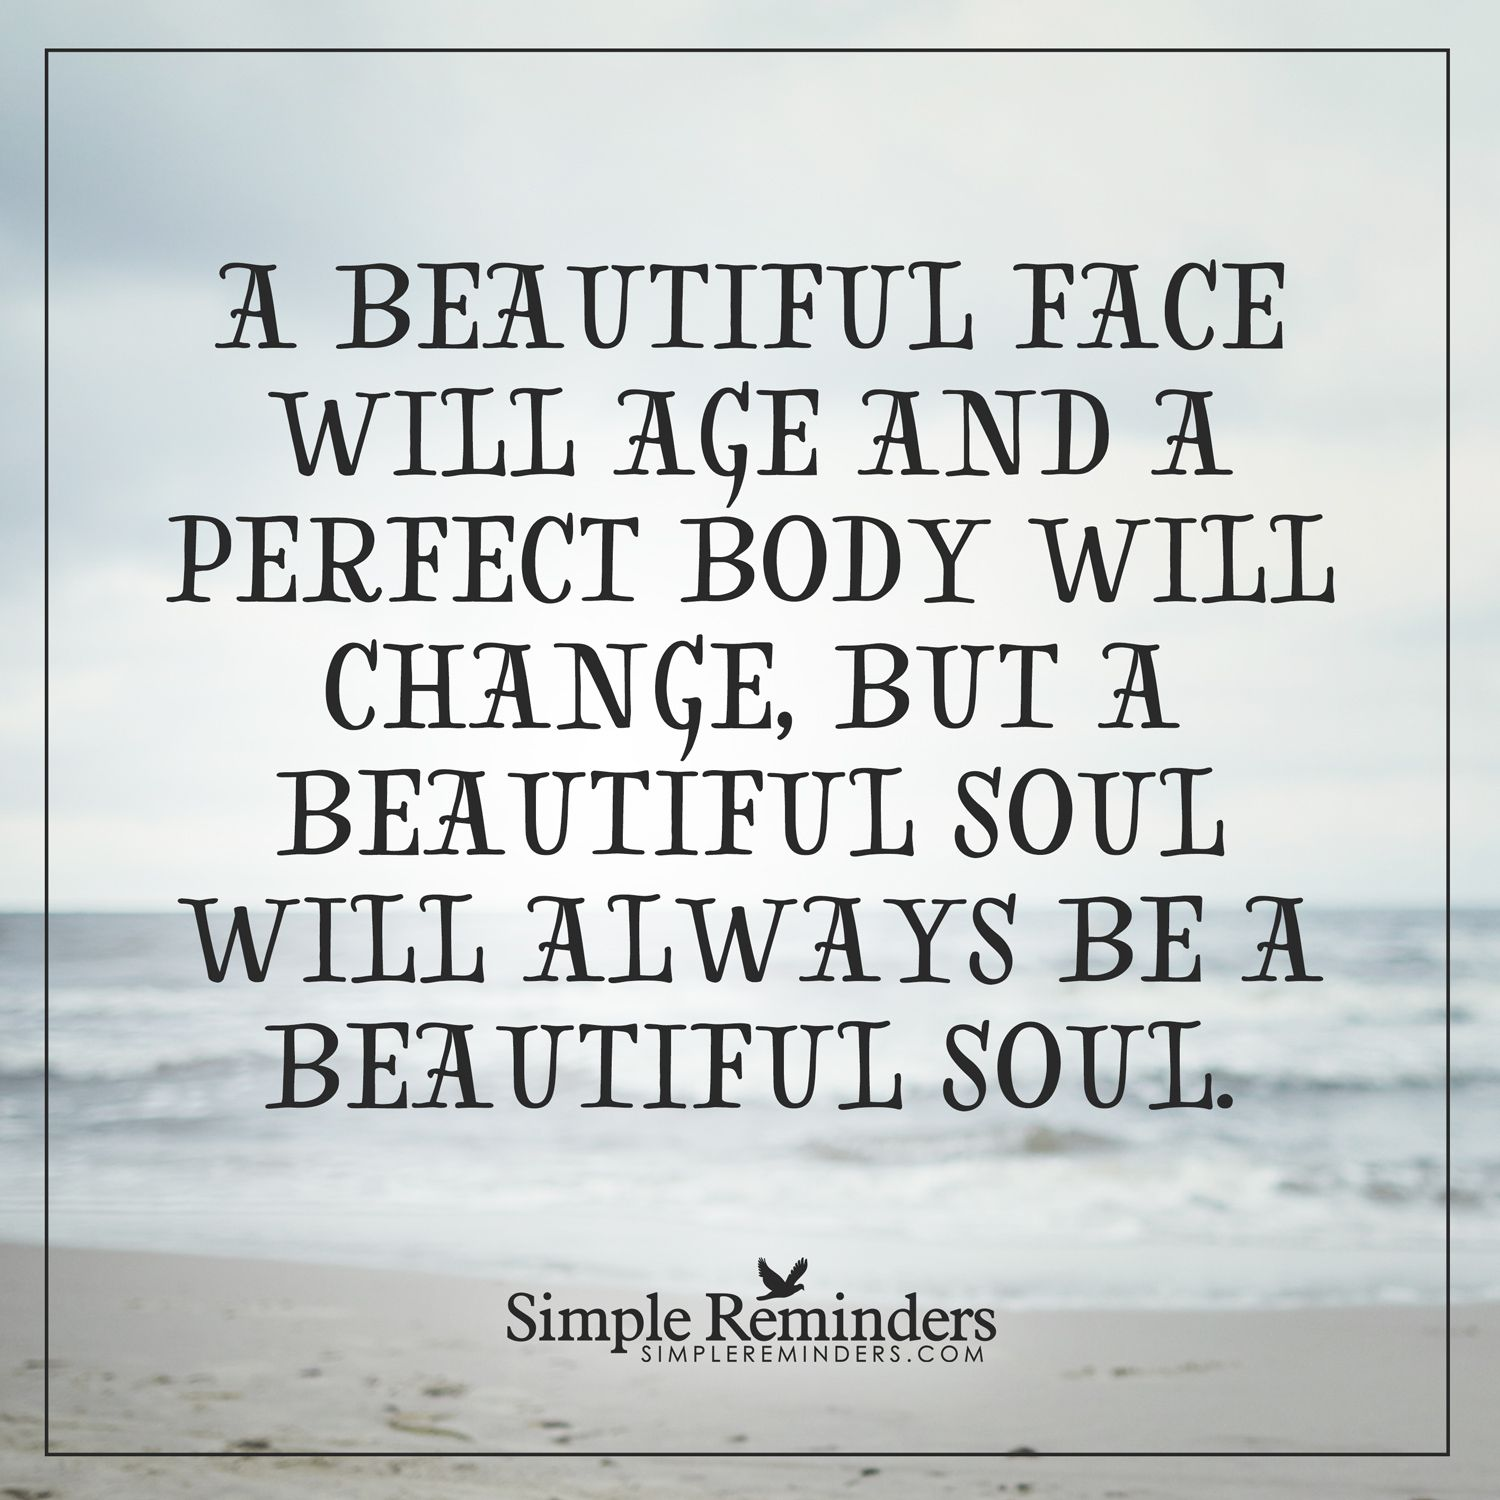 Quotes About Aging: A Beautiful Face A Beautiful Face Will Age And A Perfect